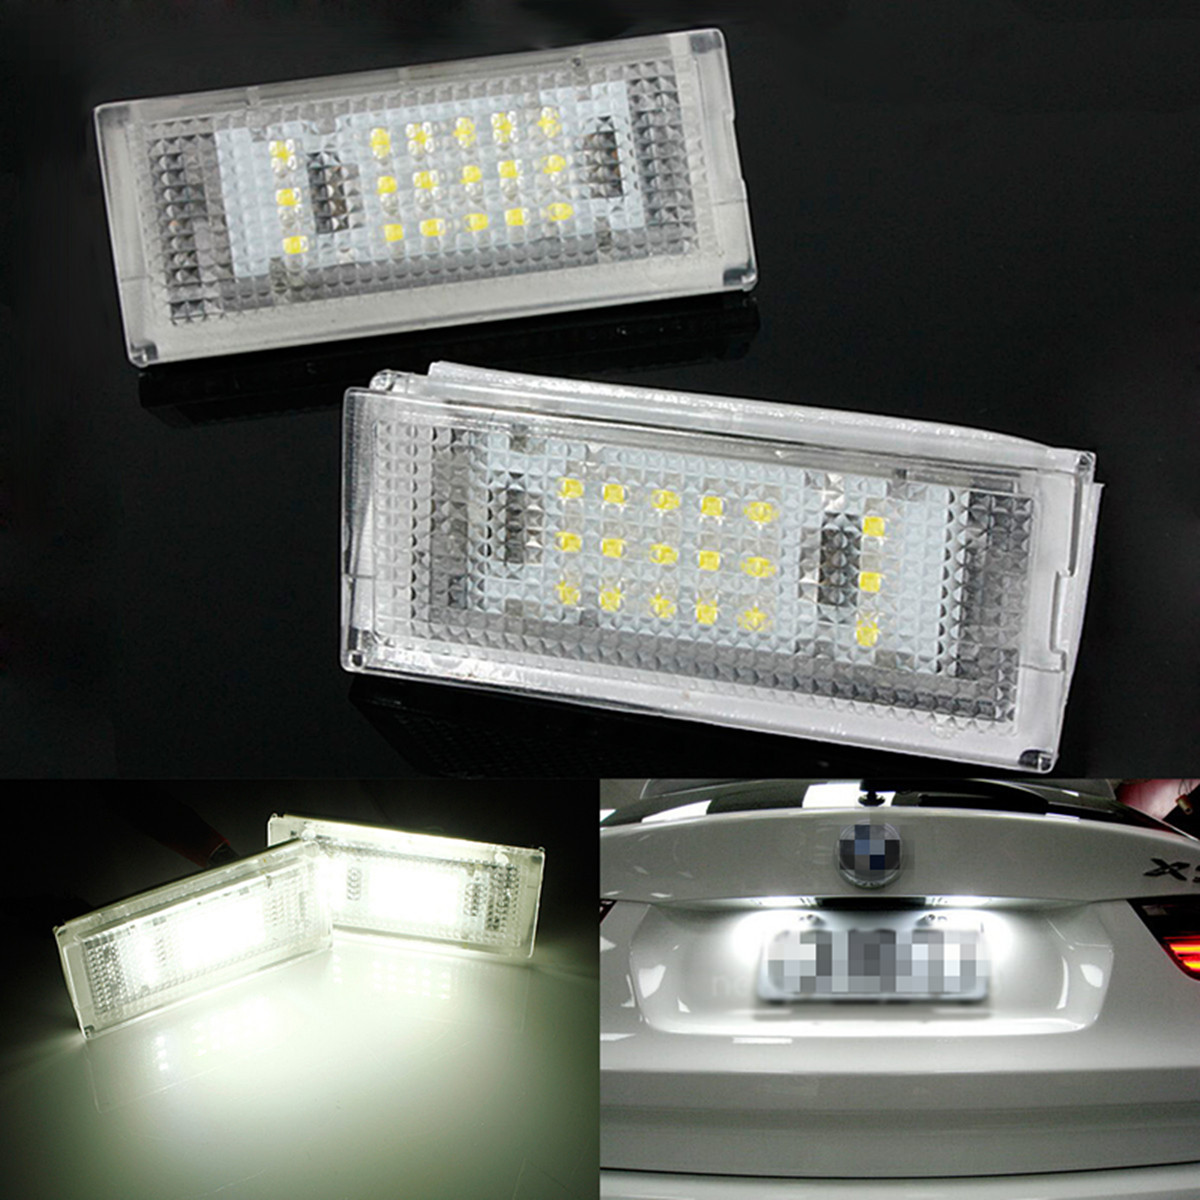 2Pcs 18 LED 6000K For HID License Plate Light Number Plate Lamp For BMW E46 4D 4Doors 323i 325i 328i 99-03 Error Free hot 2pcs error free 3528 smd 18 led car led license number plate light lamp white for bmw e46 4d sedan 5d wagon 12v